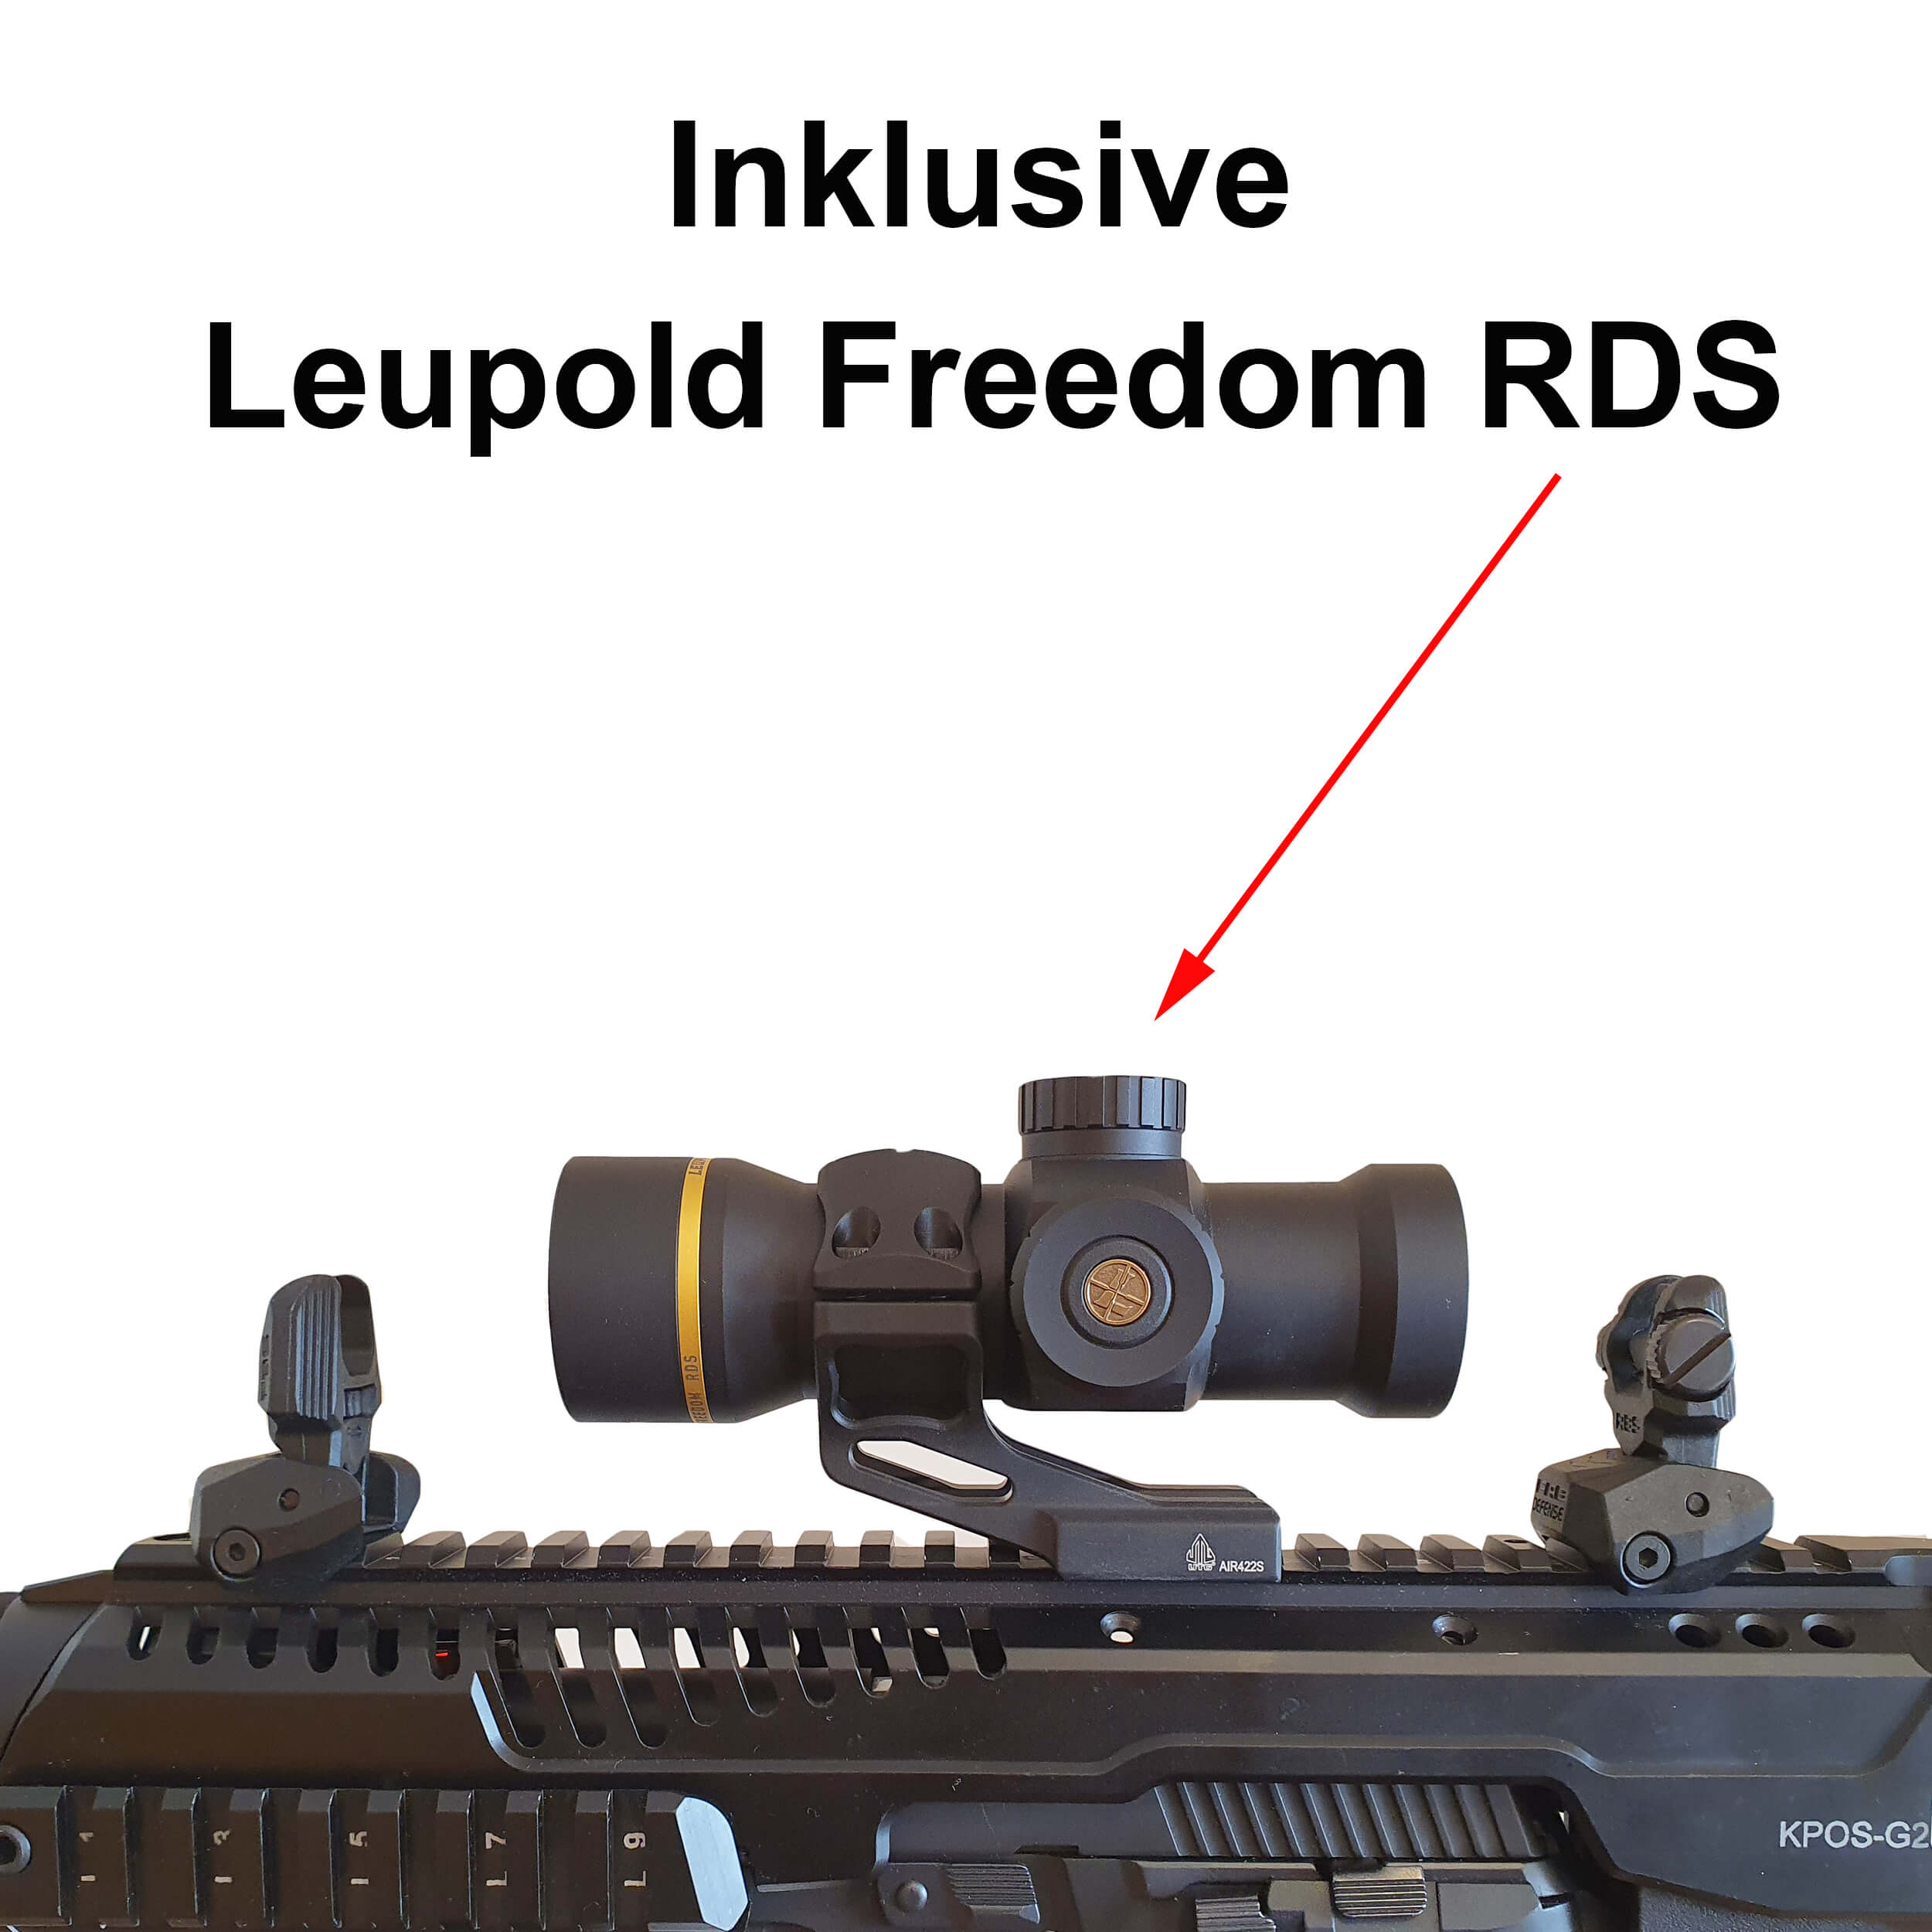 KPOS G2 incl. Leupold Freedom RDS